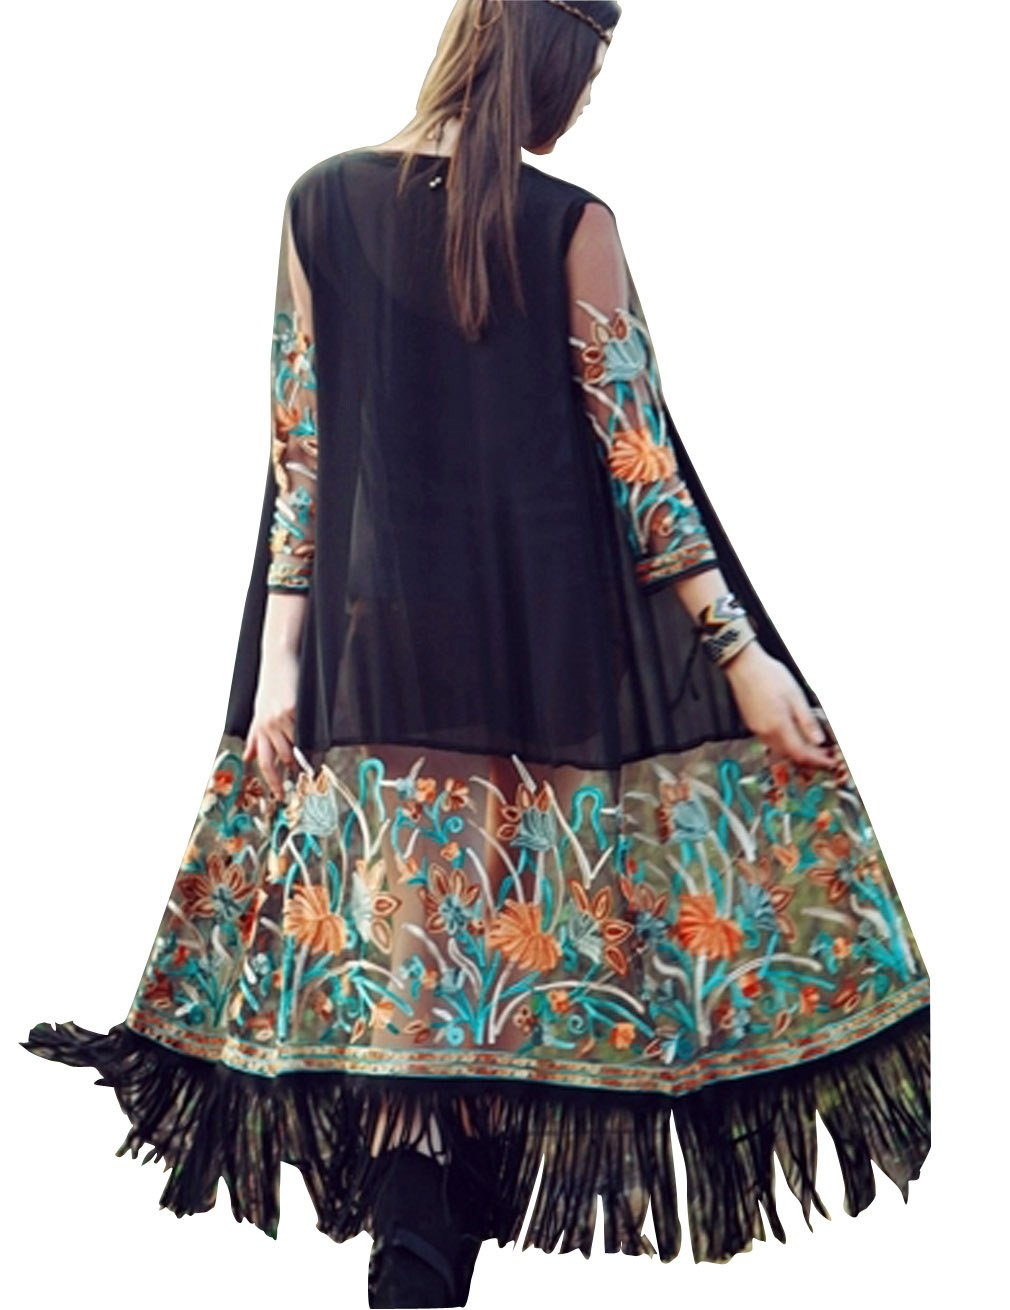 Hamour Women's Swimsuits Tassels Flower Embroider Beach Cover Up Long Kimono Cardigan,Black